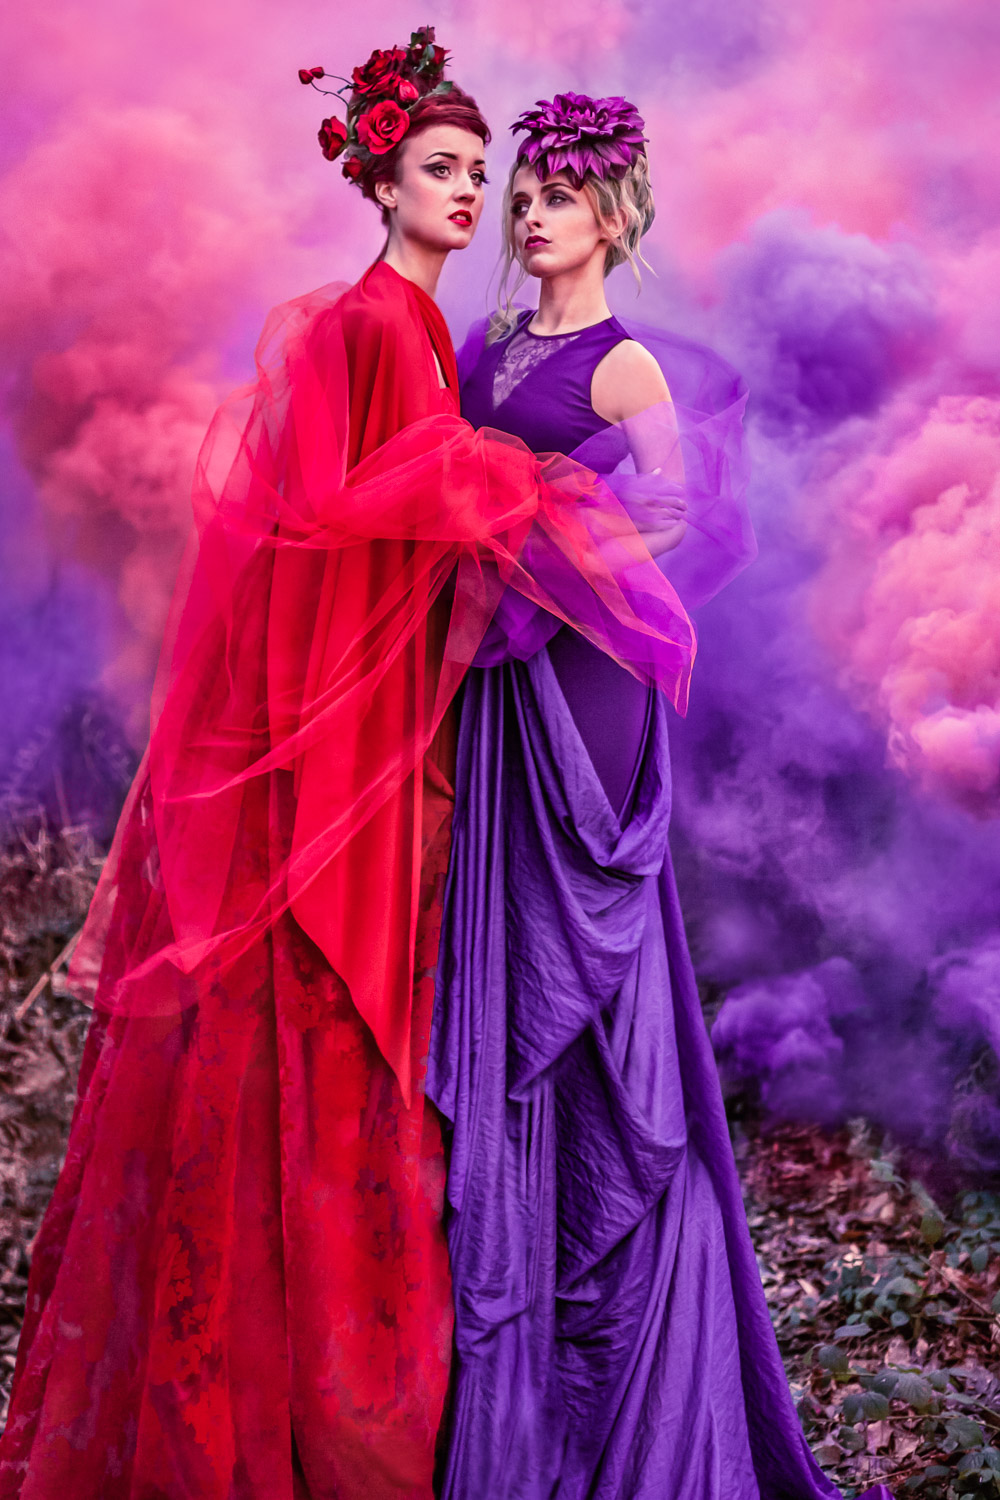 Couture Fashion Fantasy Fairytale Photo Adrian Farr